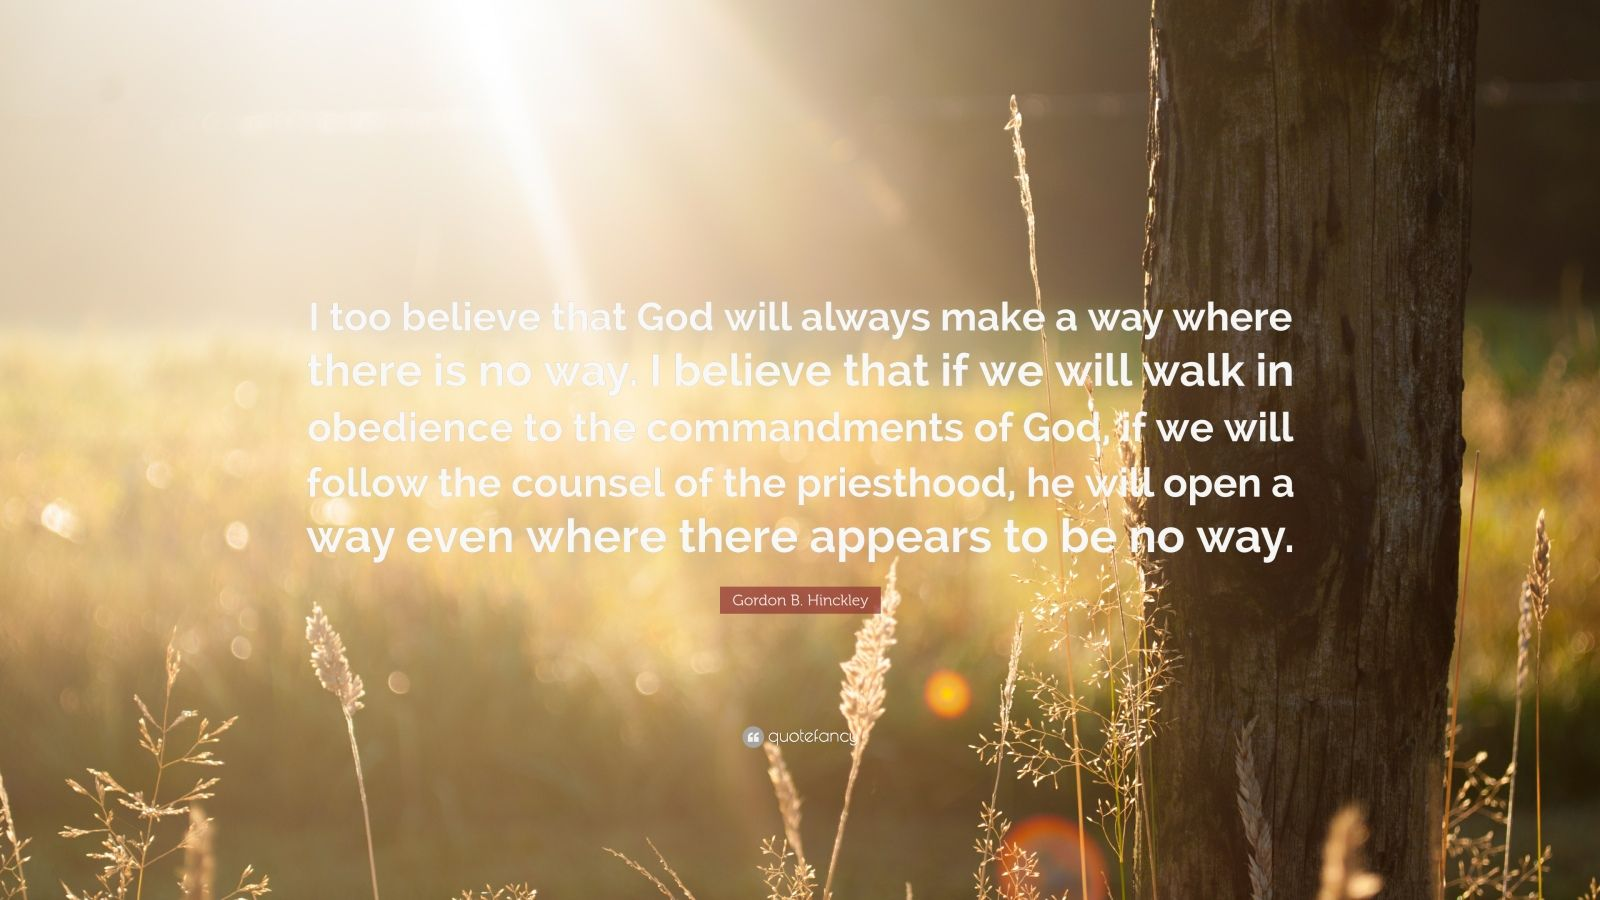 """Gordon B. Hinckley Quote: """"I too believe that God will always make a way where there is no way. I believe that if we will walk in obedience to the commandments of God, if we will follow the counsel of the priesthood, he will open a way even where there appears to be no way."""""""